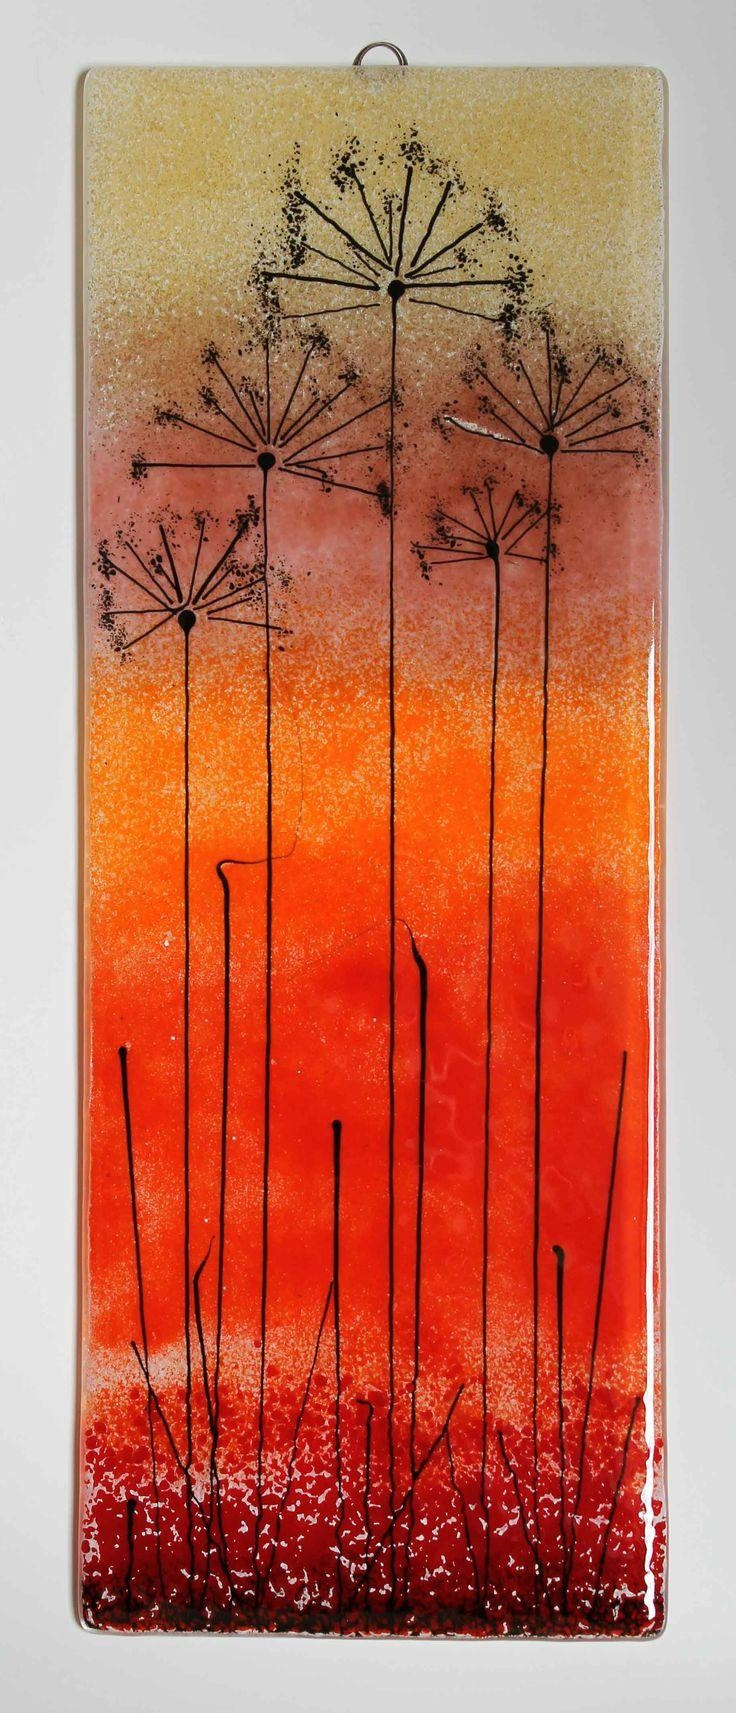 1914 Best Fused Glass – Artsy Fartsy Images On Pinterest | Stained Inside Contemporary Fused Glass Wall Art (Image 4 of 20)